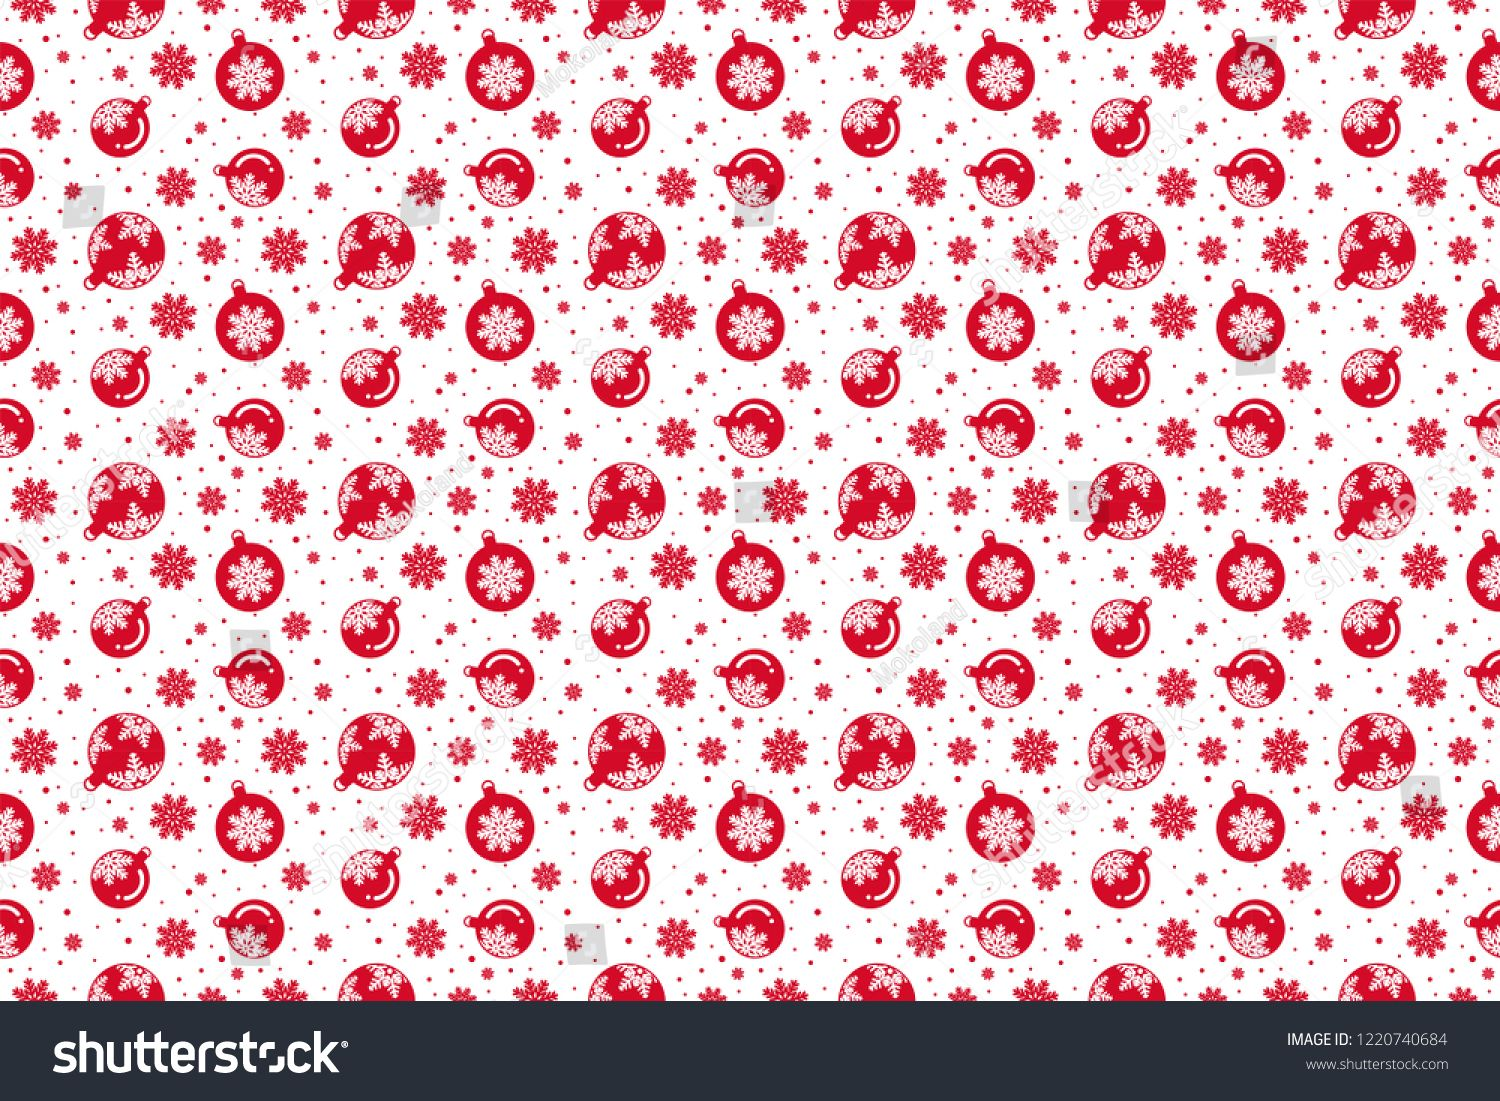 Merry Christmas Pattern Seamless Christmas Wallpaper Red And White Xmas Background Endless Texture For Gift Christmas Wallpaper Christmas Pattern Wallpaper